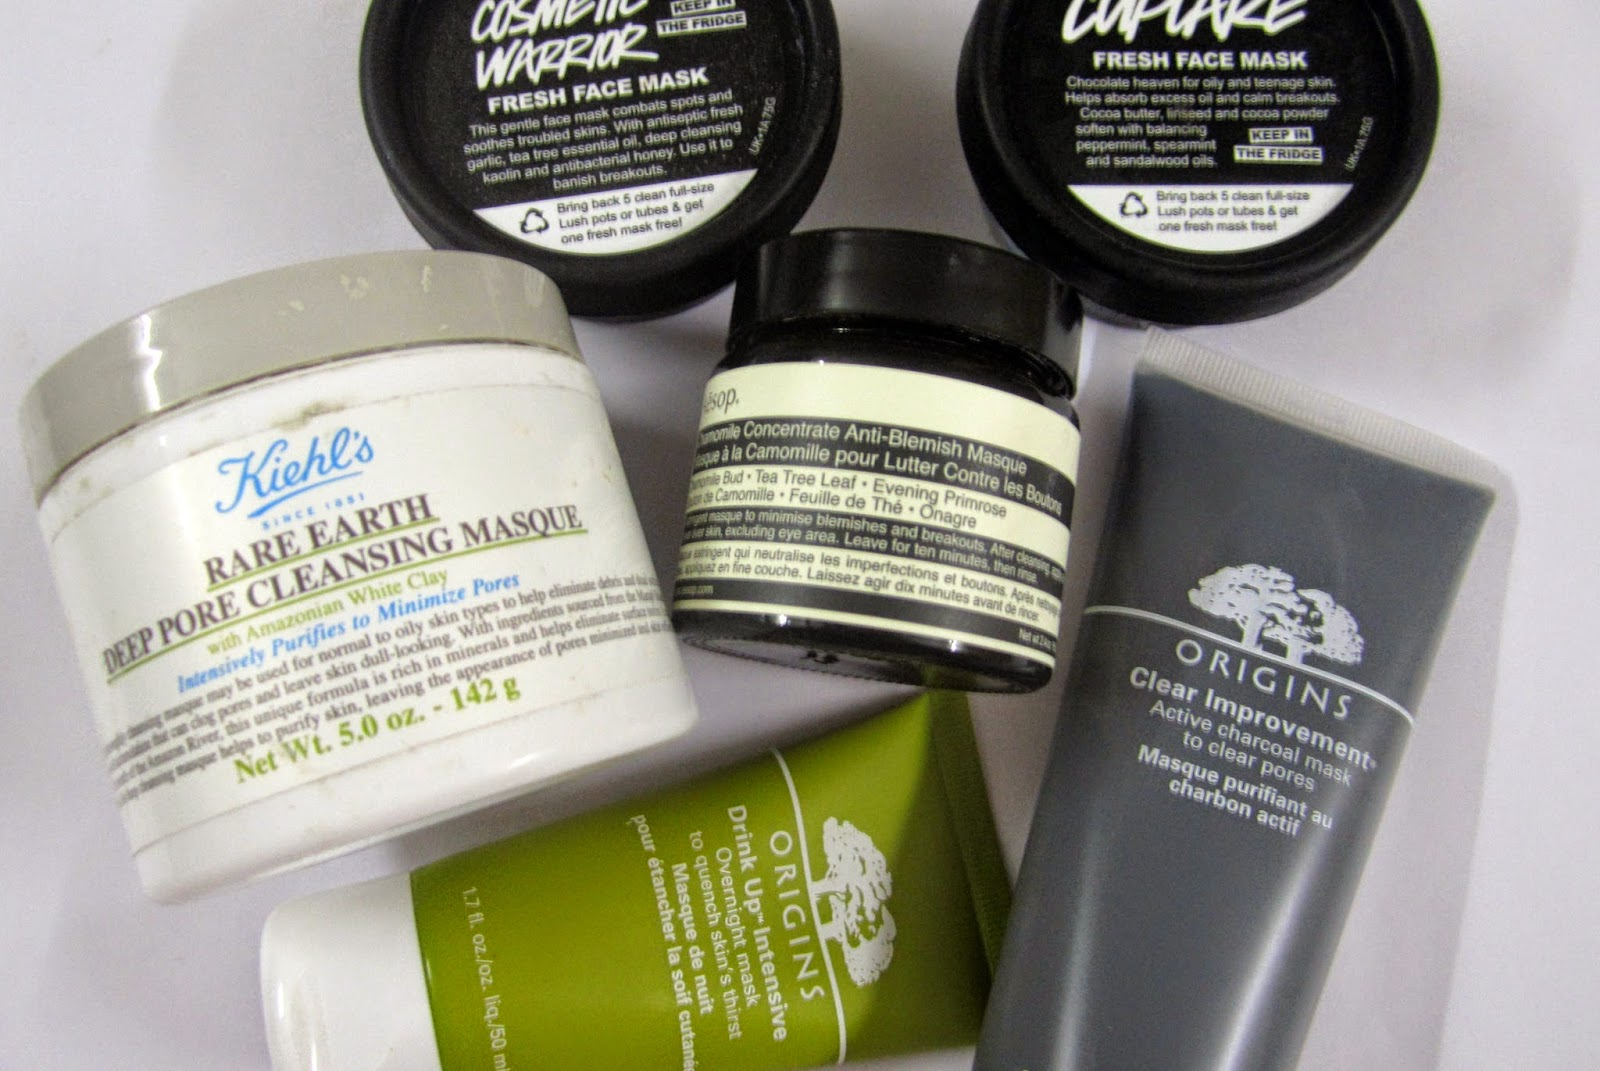 Lush Cupcake Fresh Face Mask, Lush cosmetic warrior fresh face mask, origins clear improvement active charcoal mask, origins drink up intensive overnight mask, Aesop chamomile concentrate anti-blemish masque, kiehl's rare earth deep pore cleansing mask